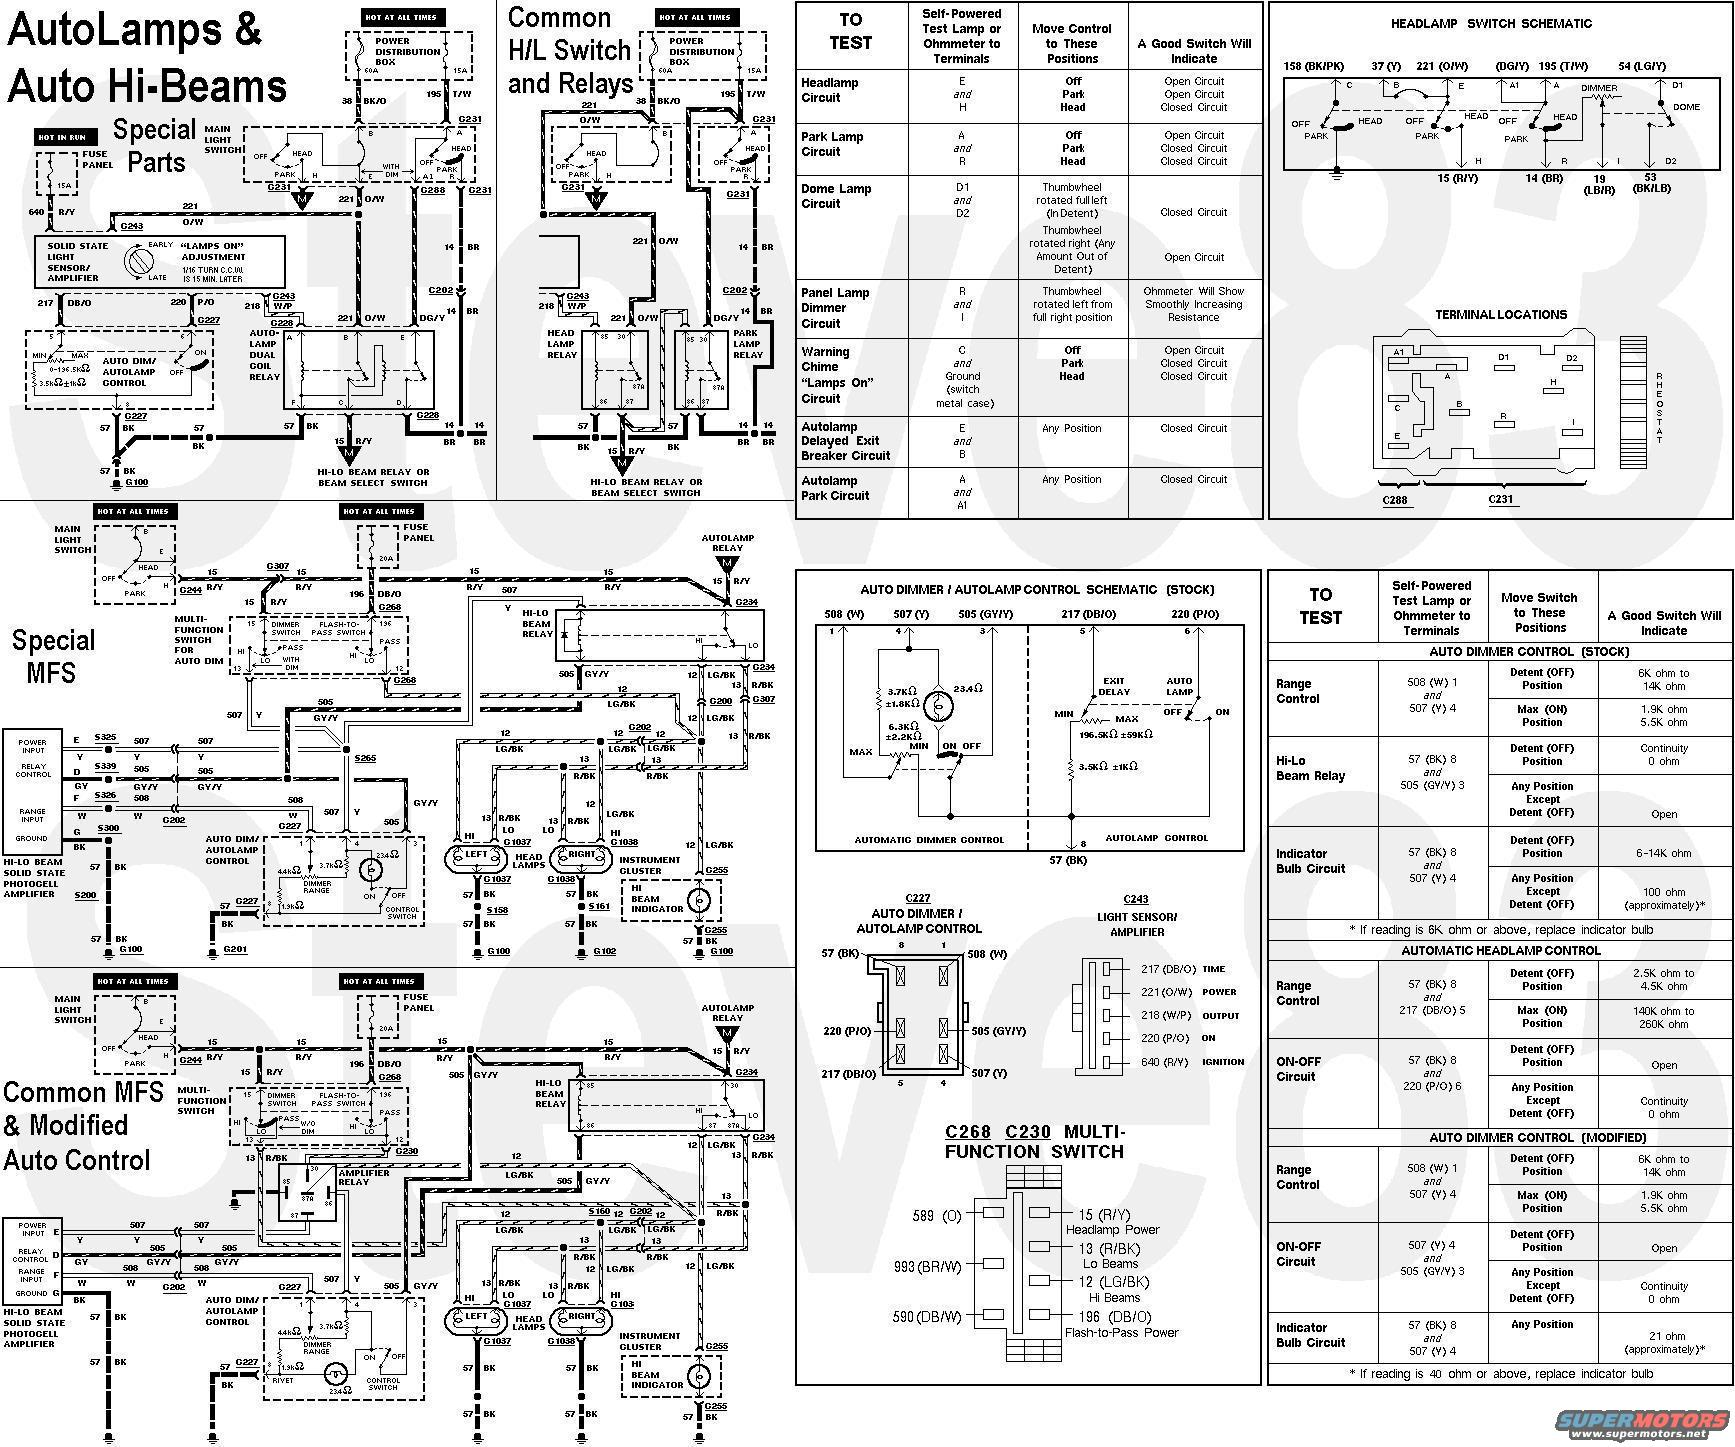 multifunction switch - ford f150 forum